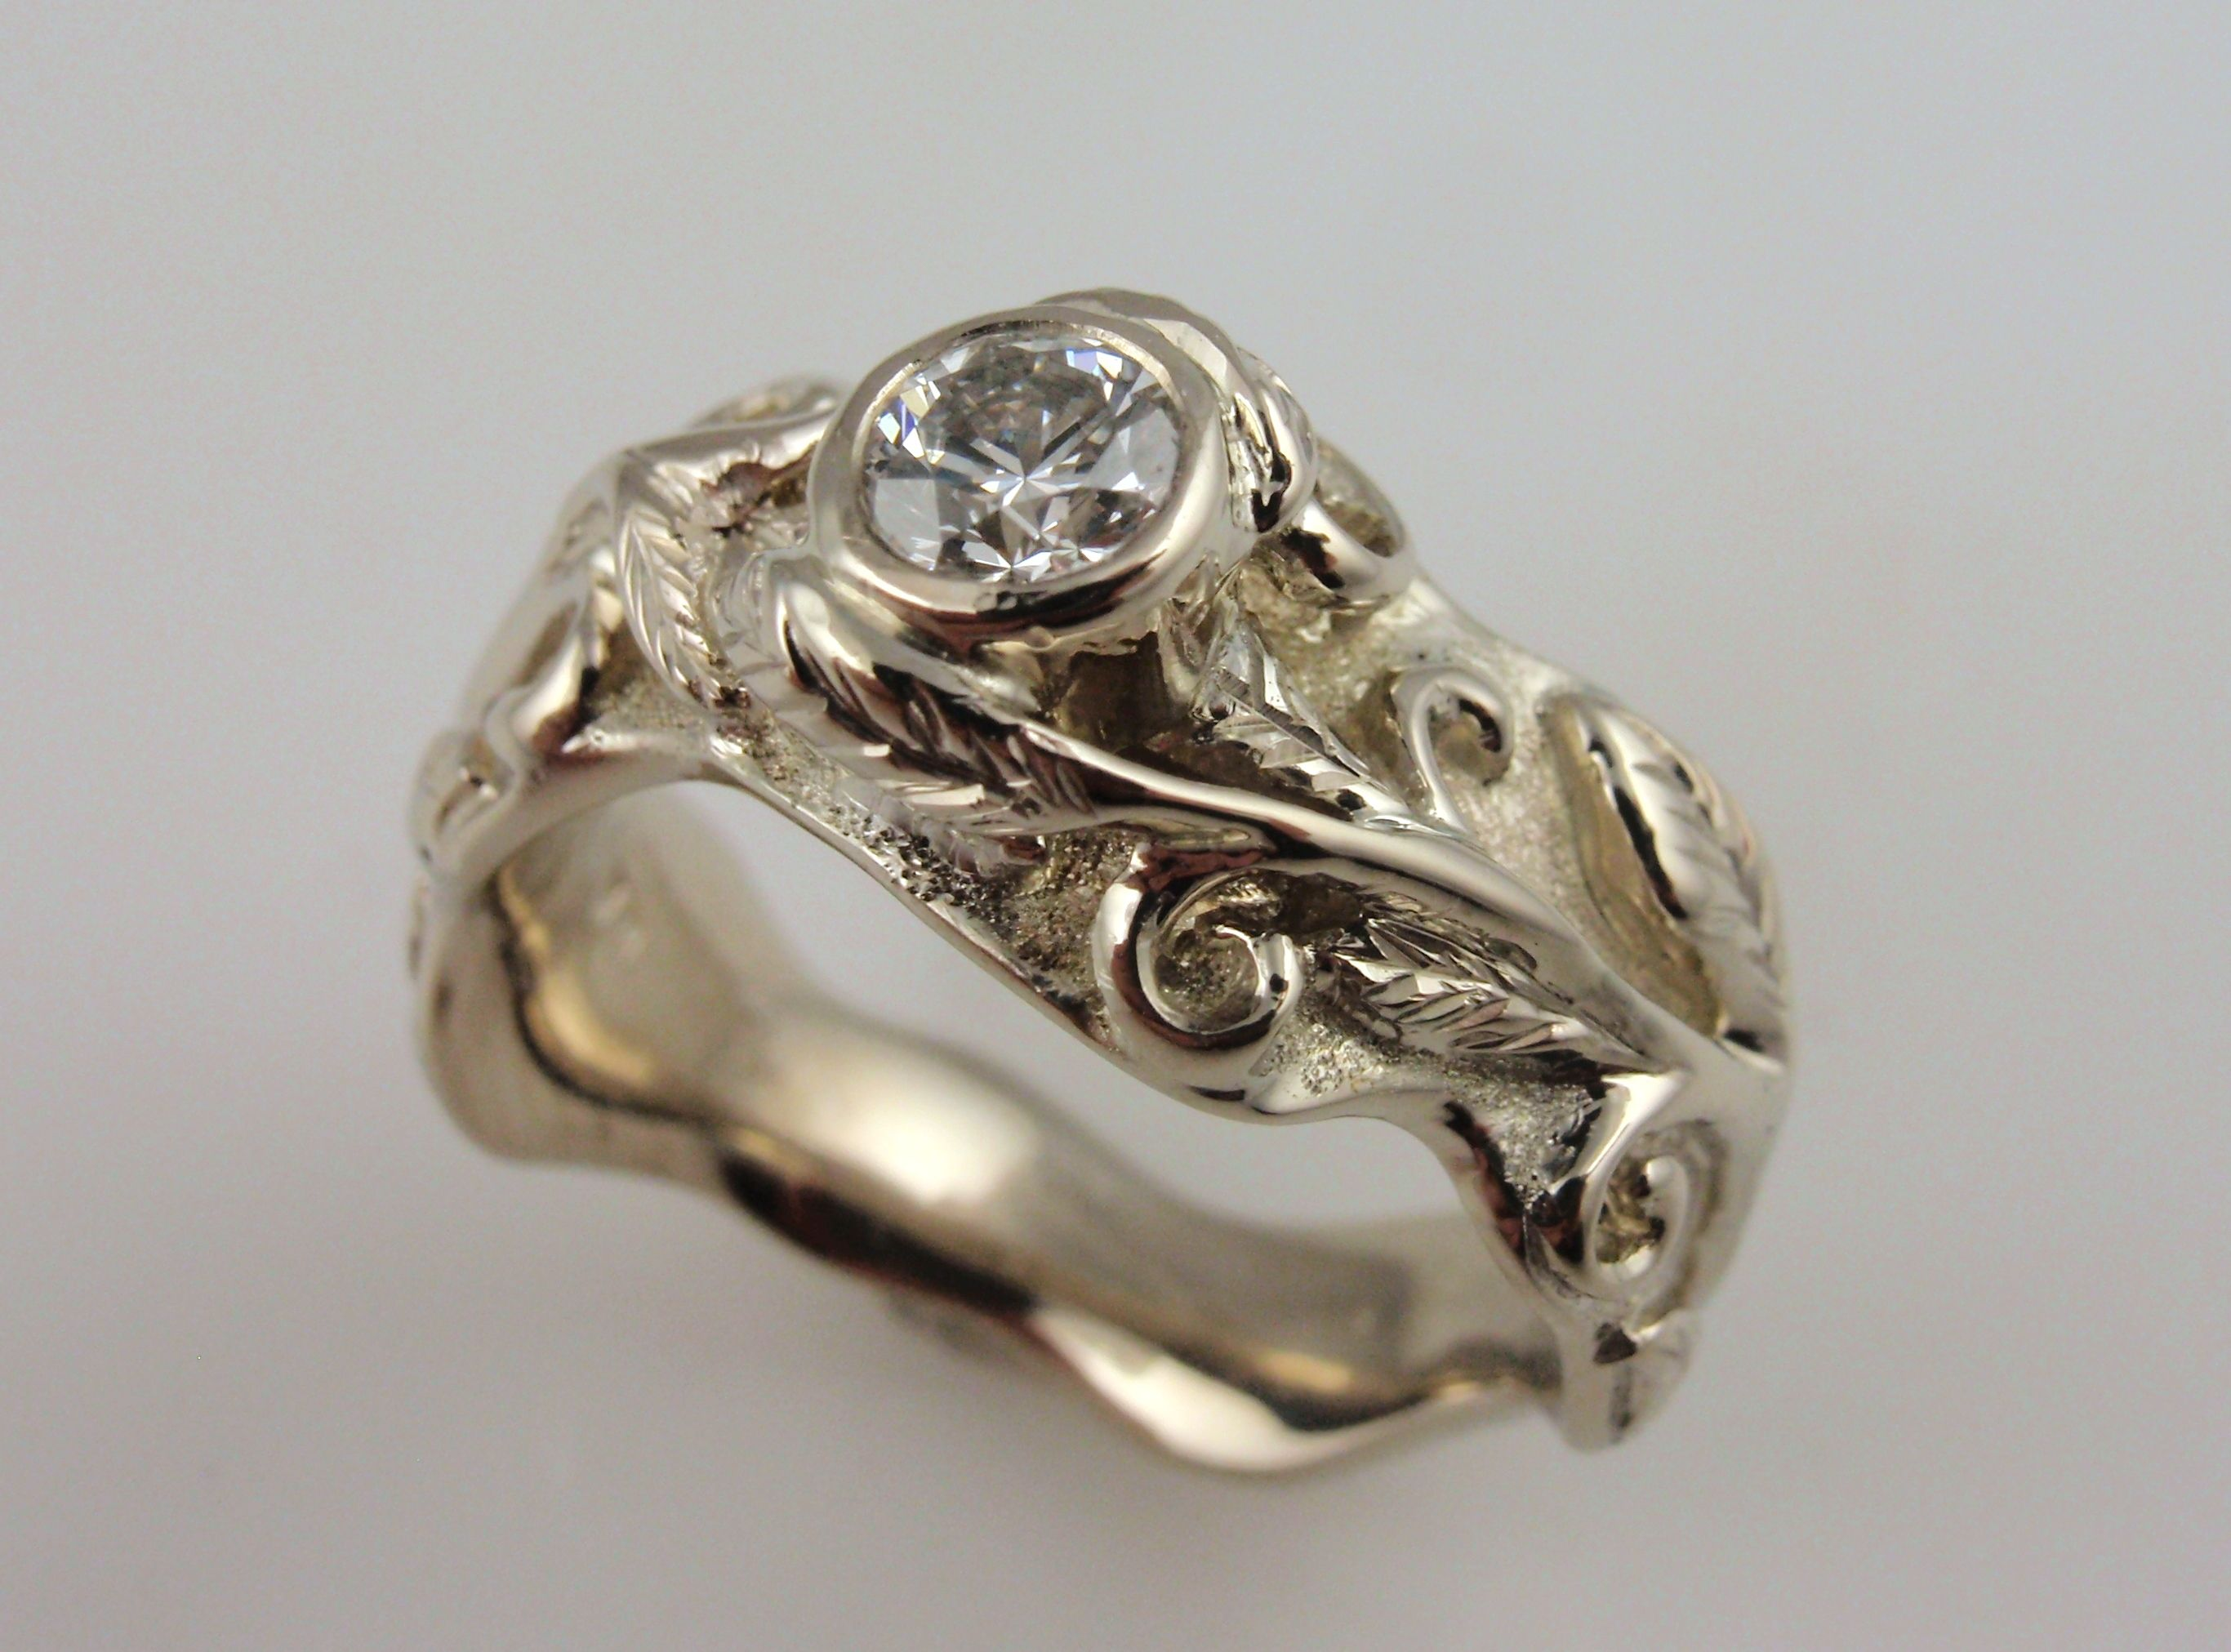 sbieco rr ring band argento anello a c orafi fascia filigree sassari jewellery filigrana silver rings bands in pibiones